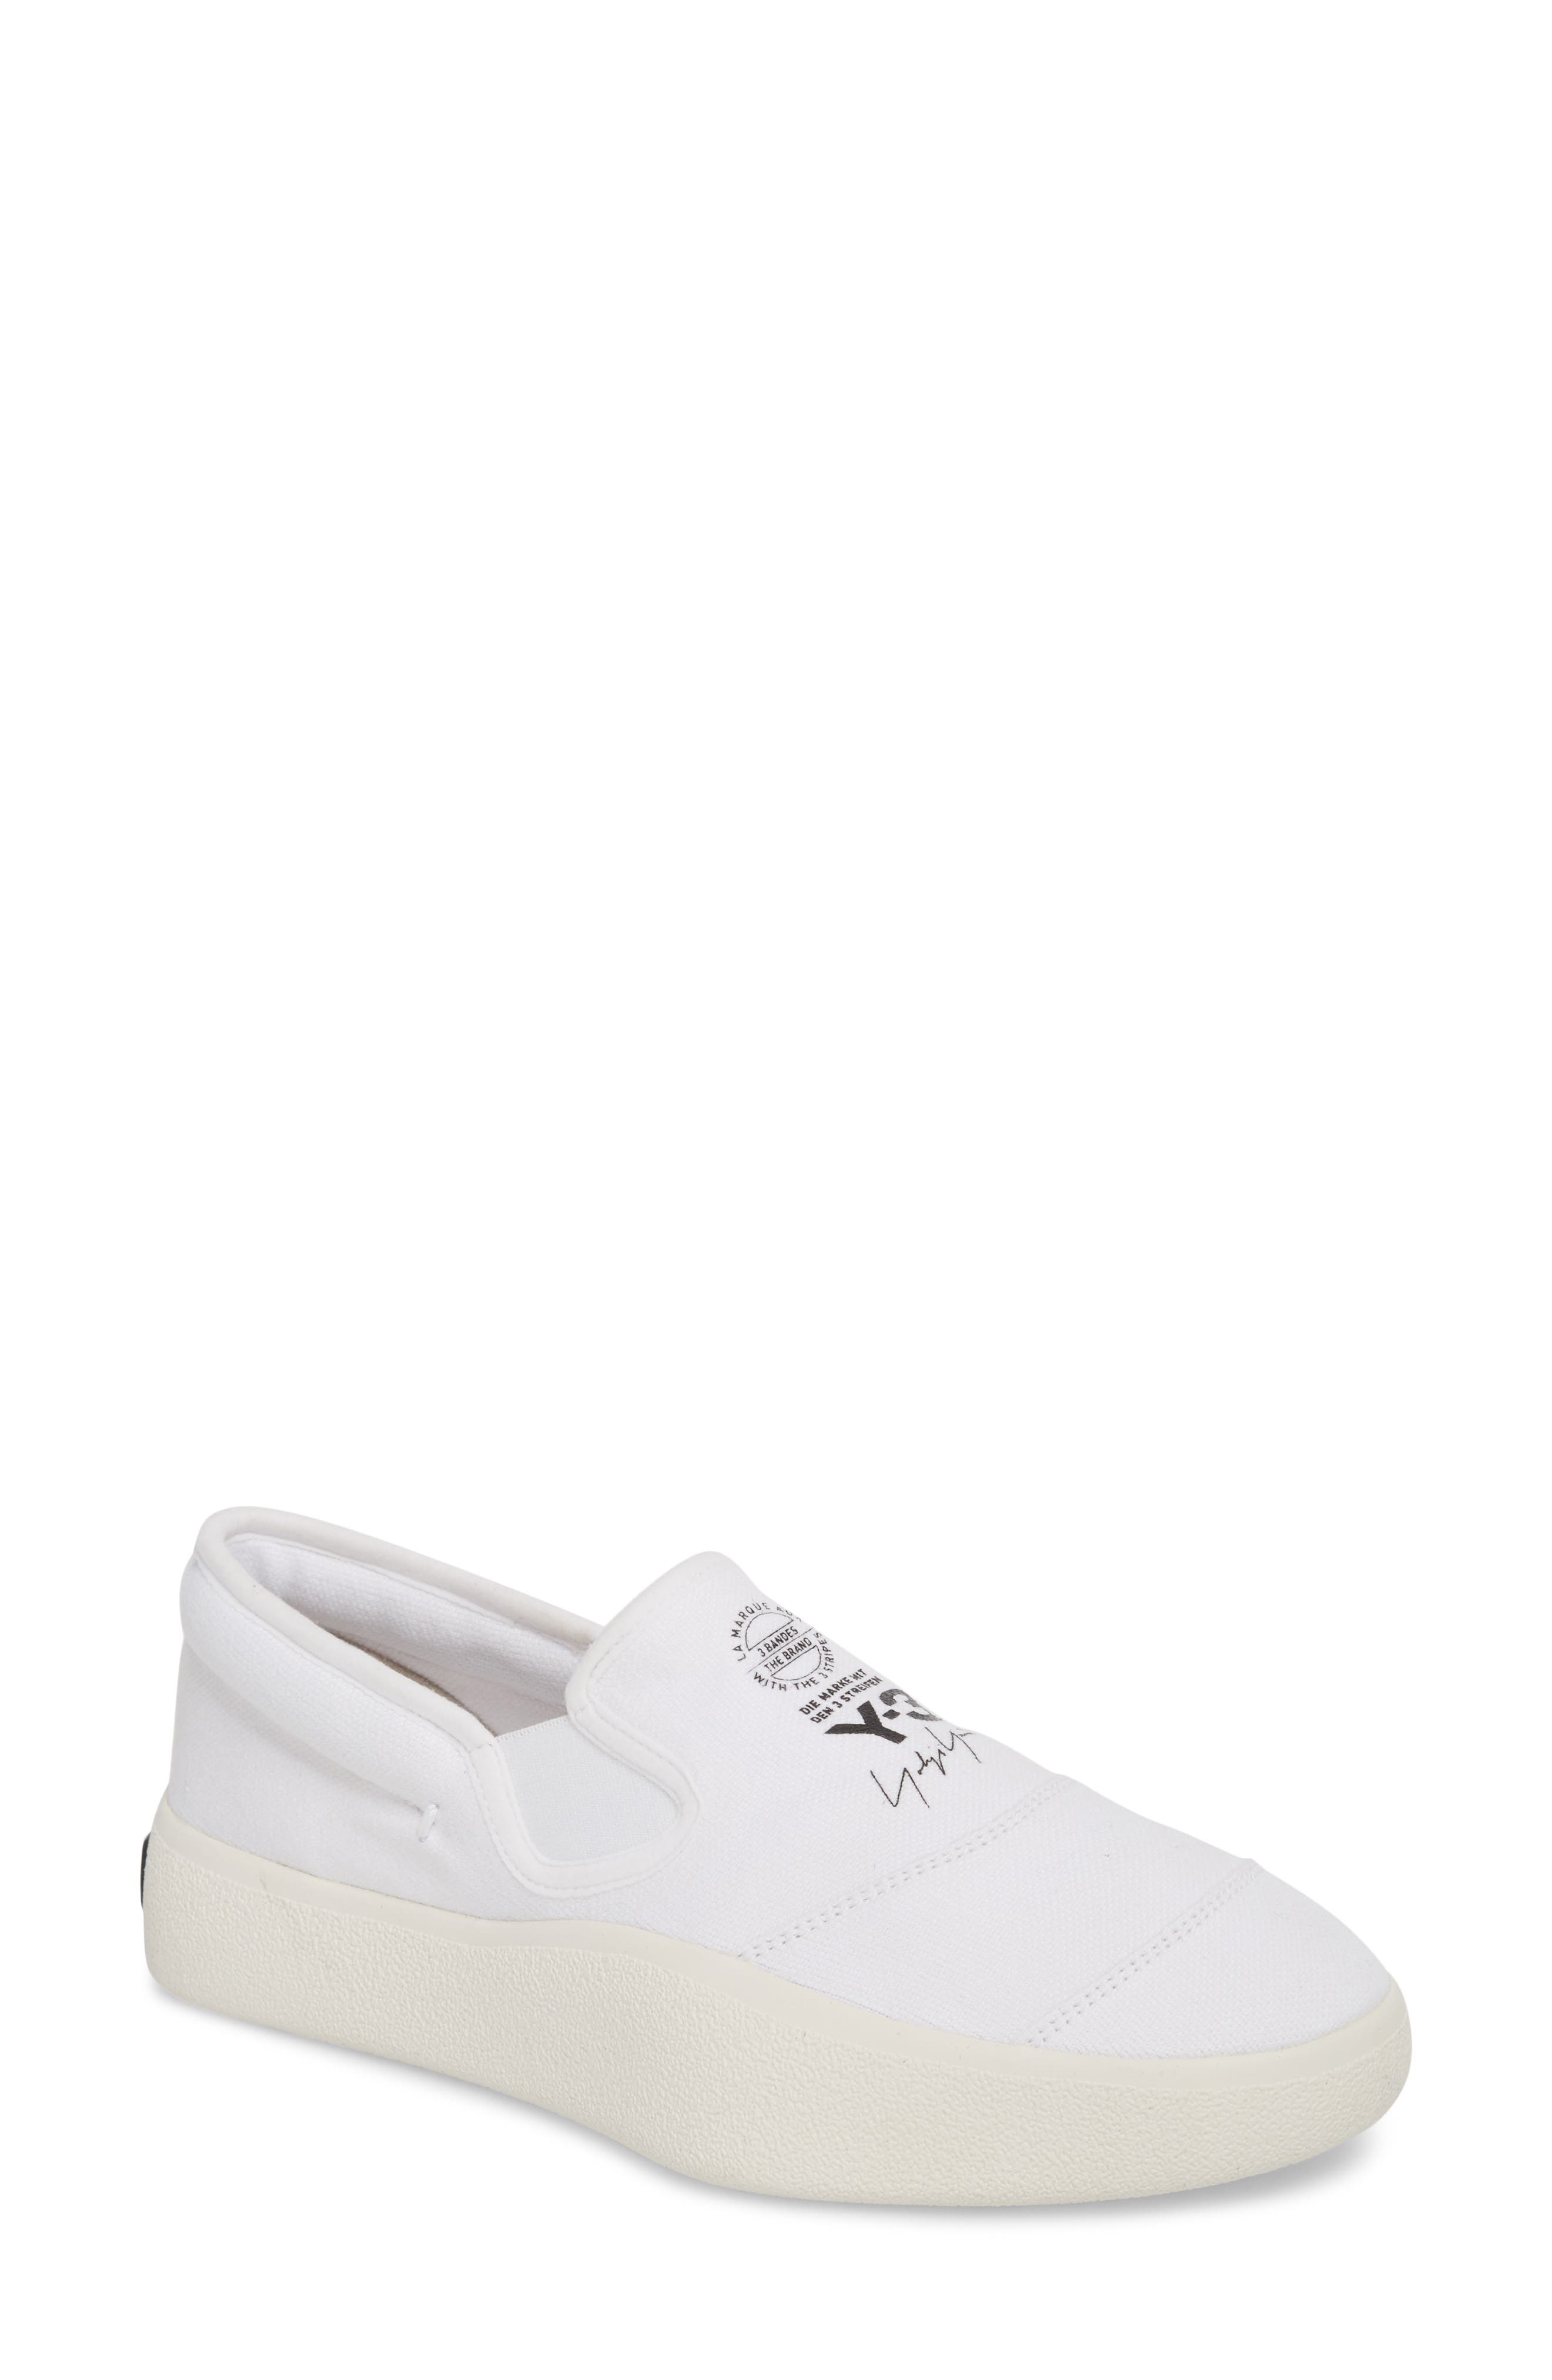 Y-3 Tangutsu Slip-On Sneaker (Women)